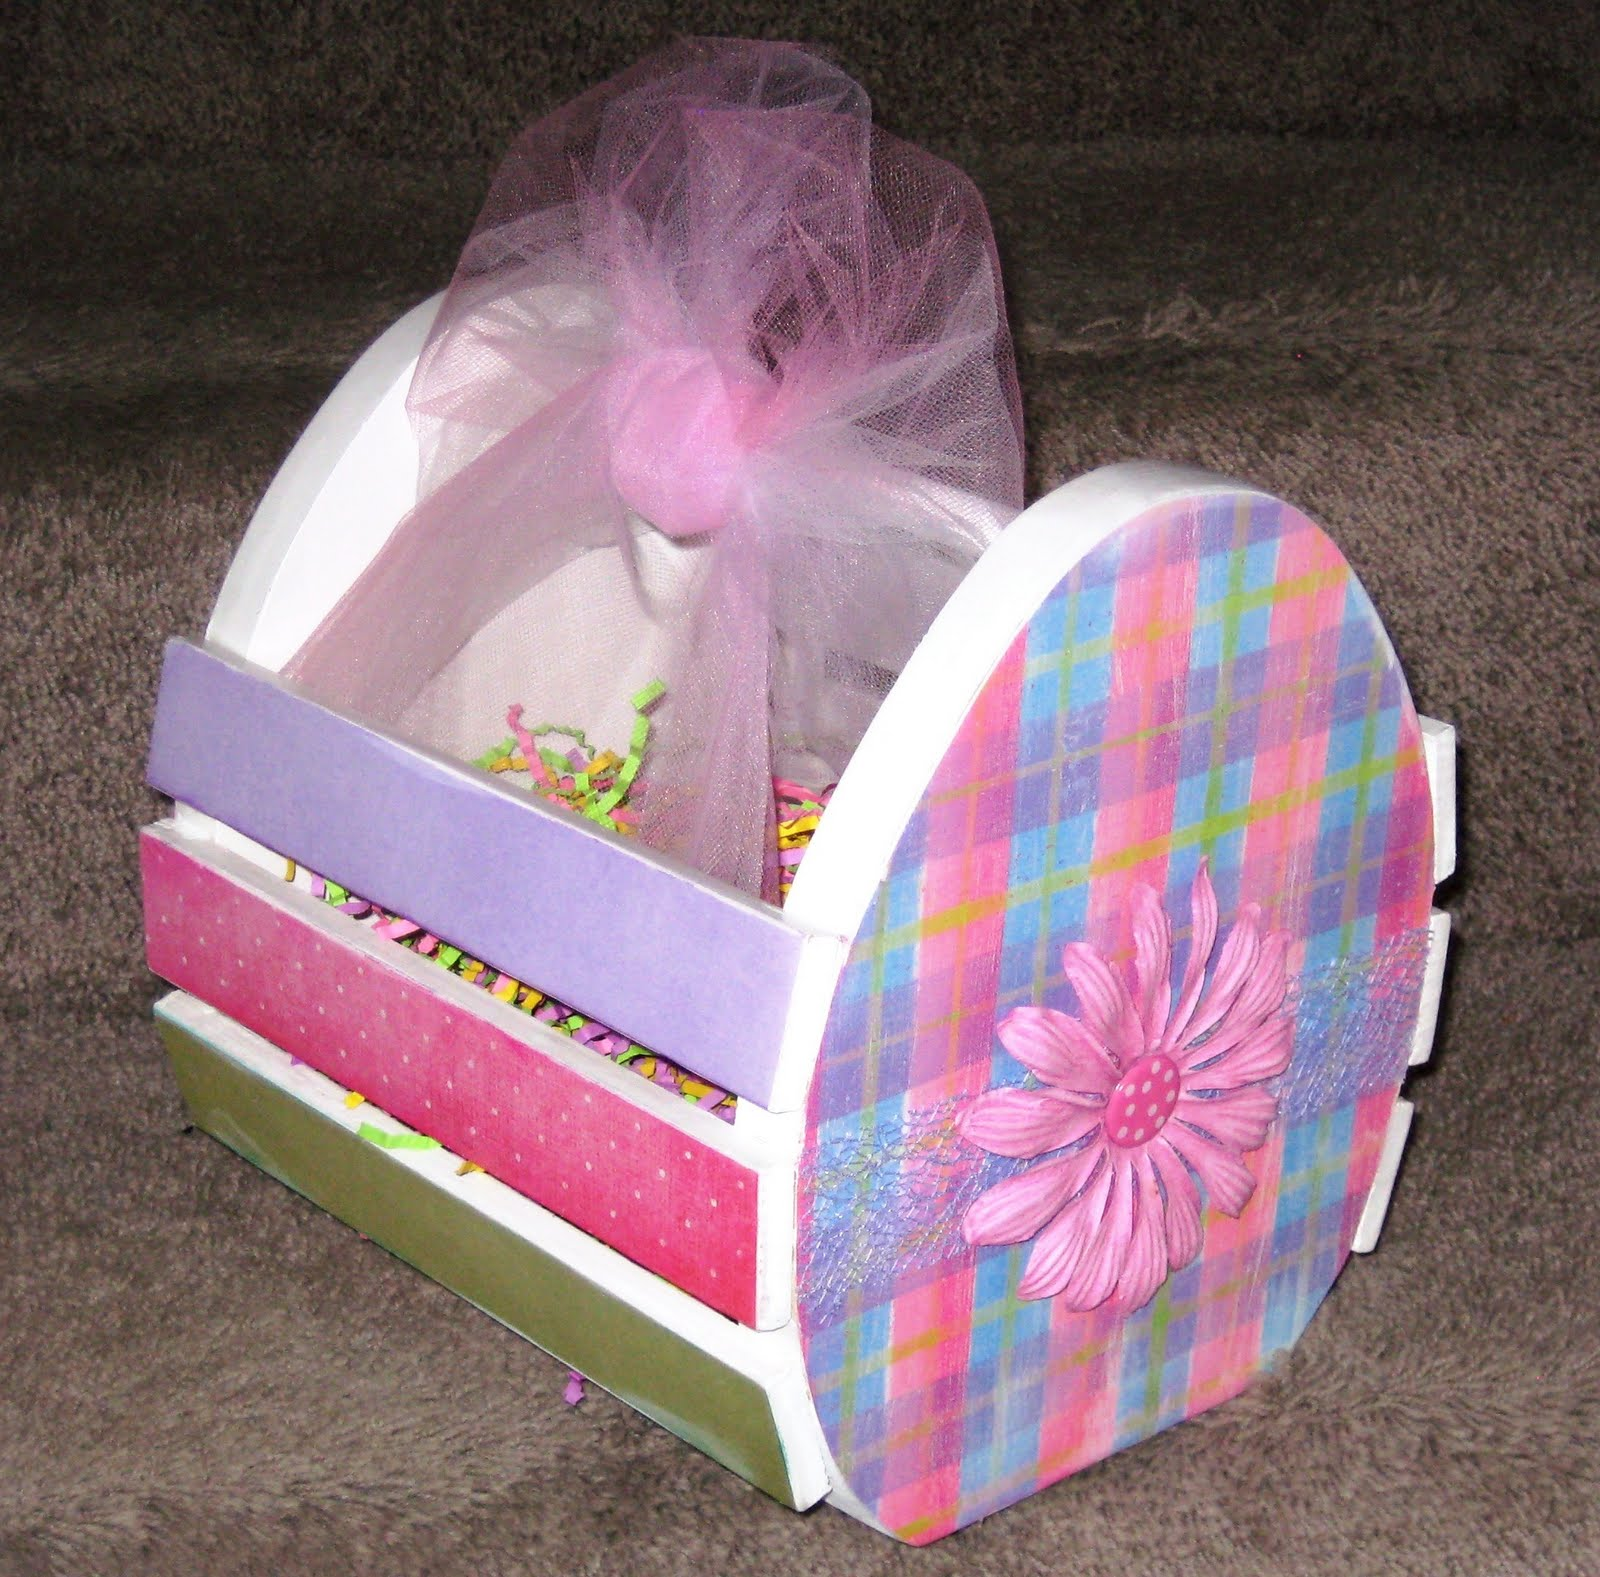 Green eyed girl crafts wood easter basket - Easter basket craft ideas ...